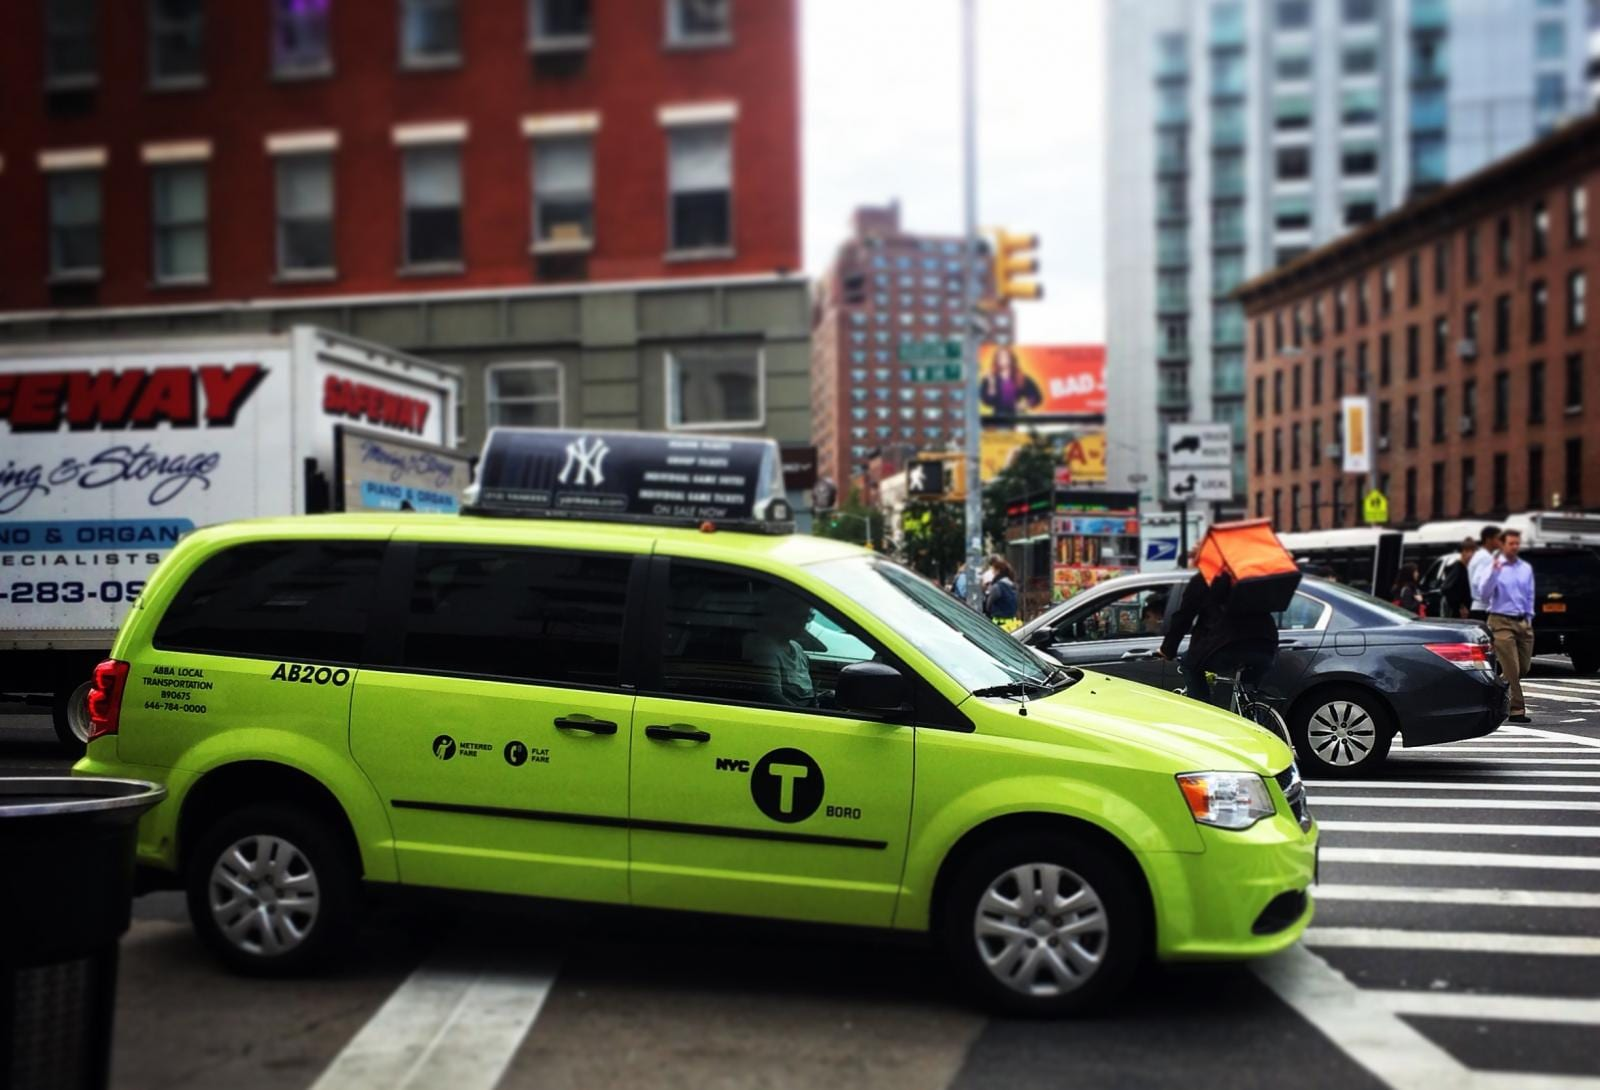 Grüne Taxis in New York: Boro Cabs